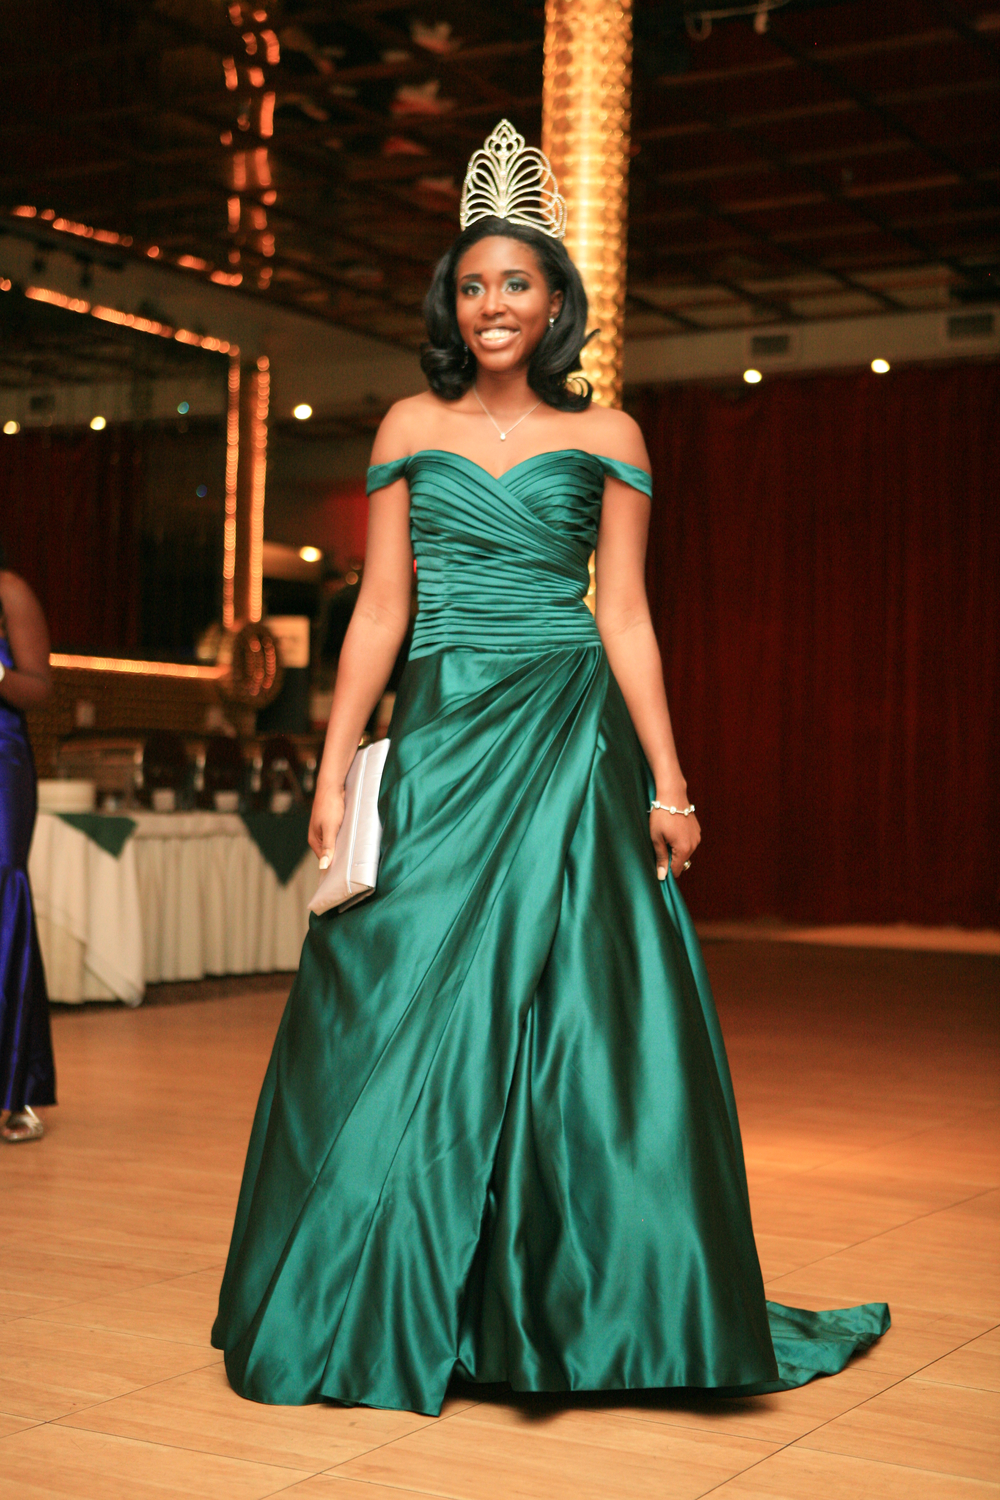 An old shot of me when I was Miss Nigerian Independence